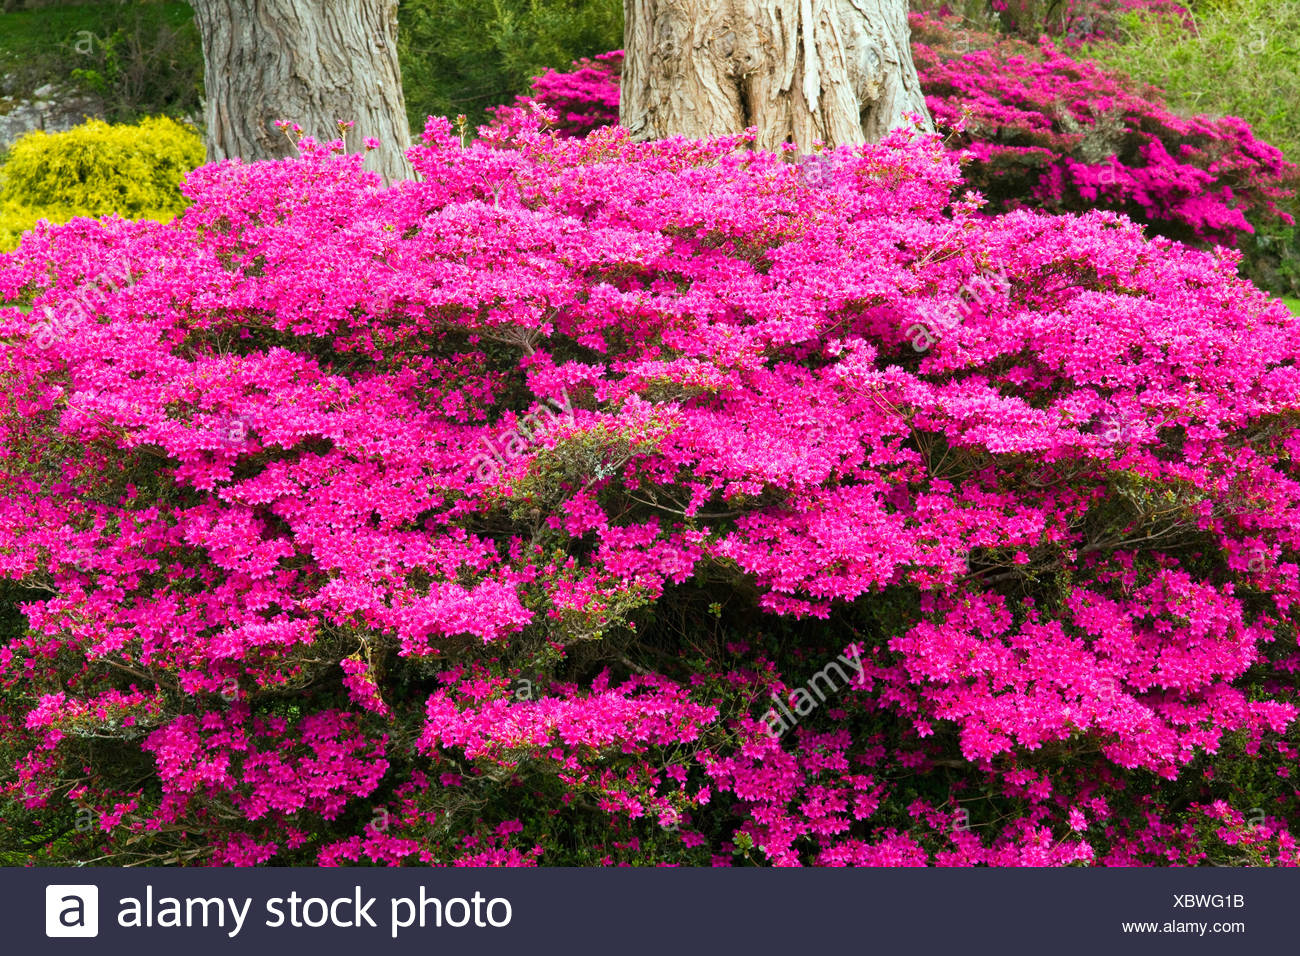 Bright pink flowers growing at the base of a tree in muckross bright pink flowers growing at the base of a tree in muckross gardens killarney county kerry ireland mightylinksfo